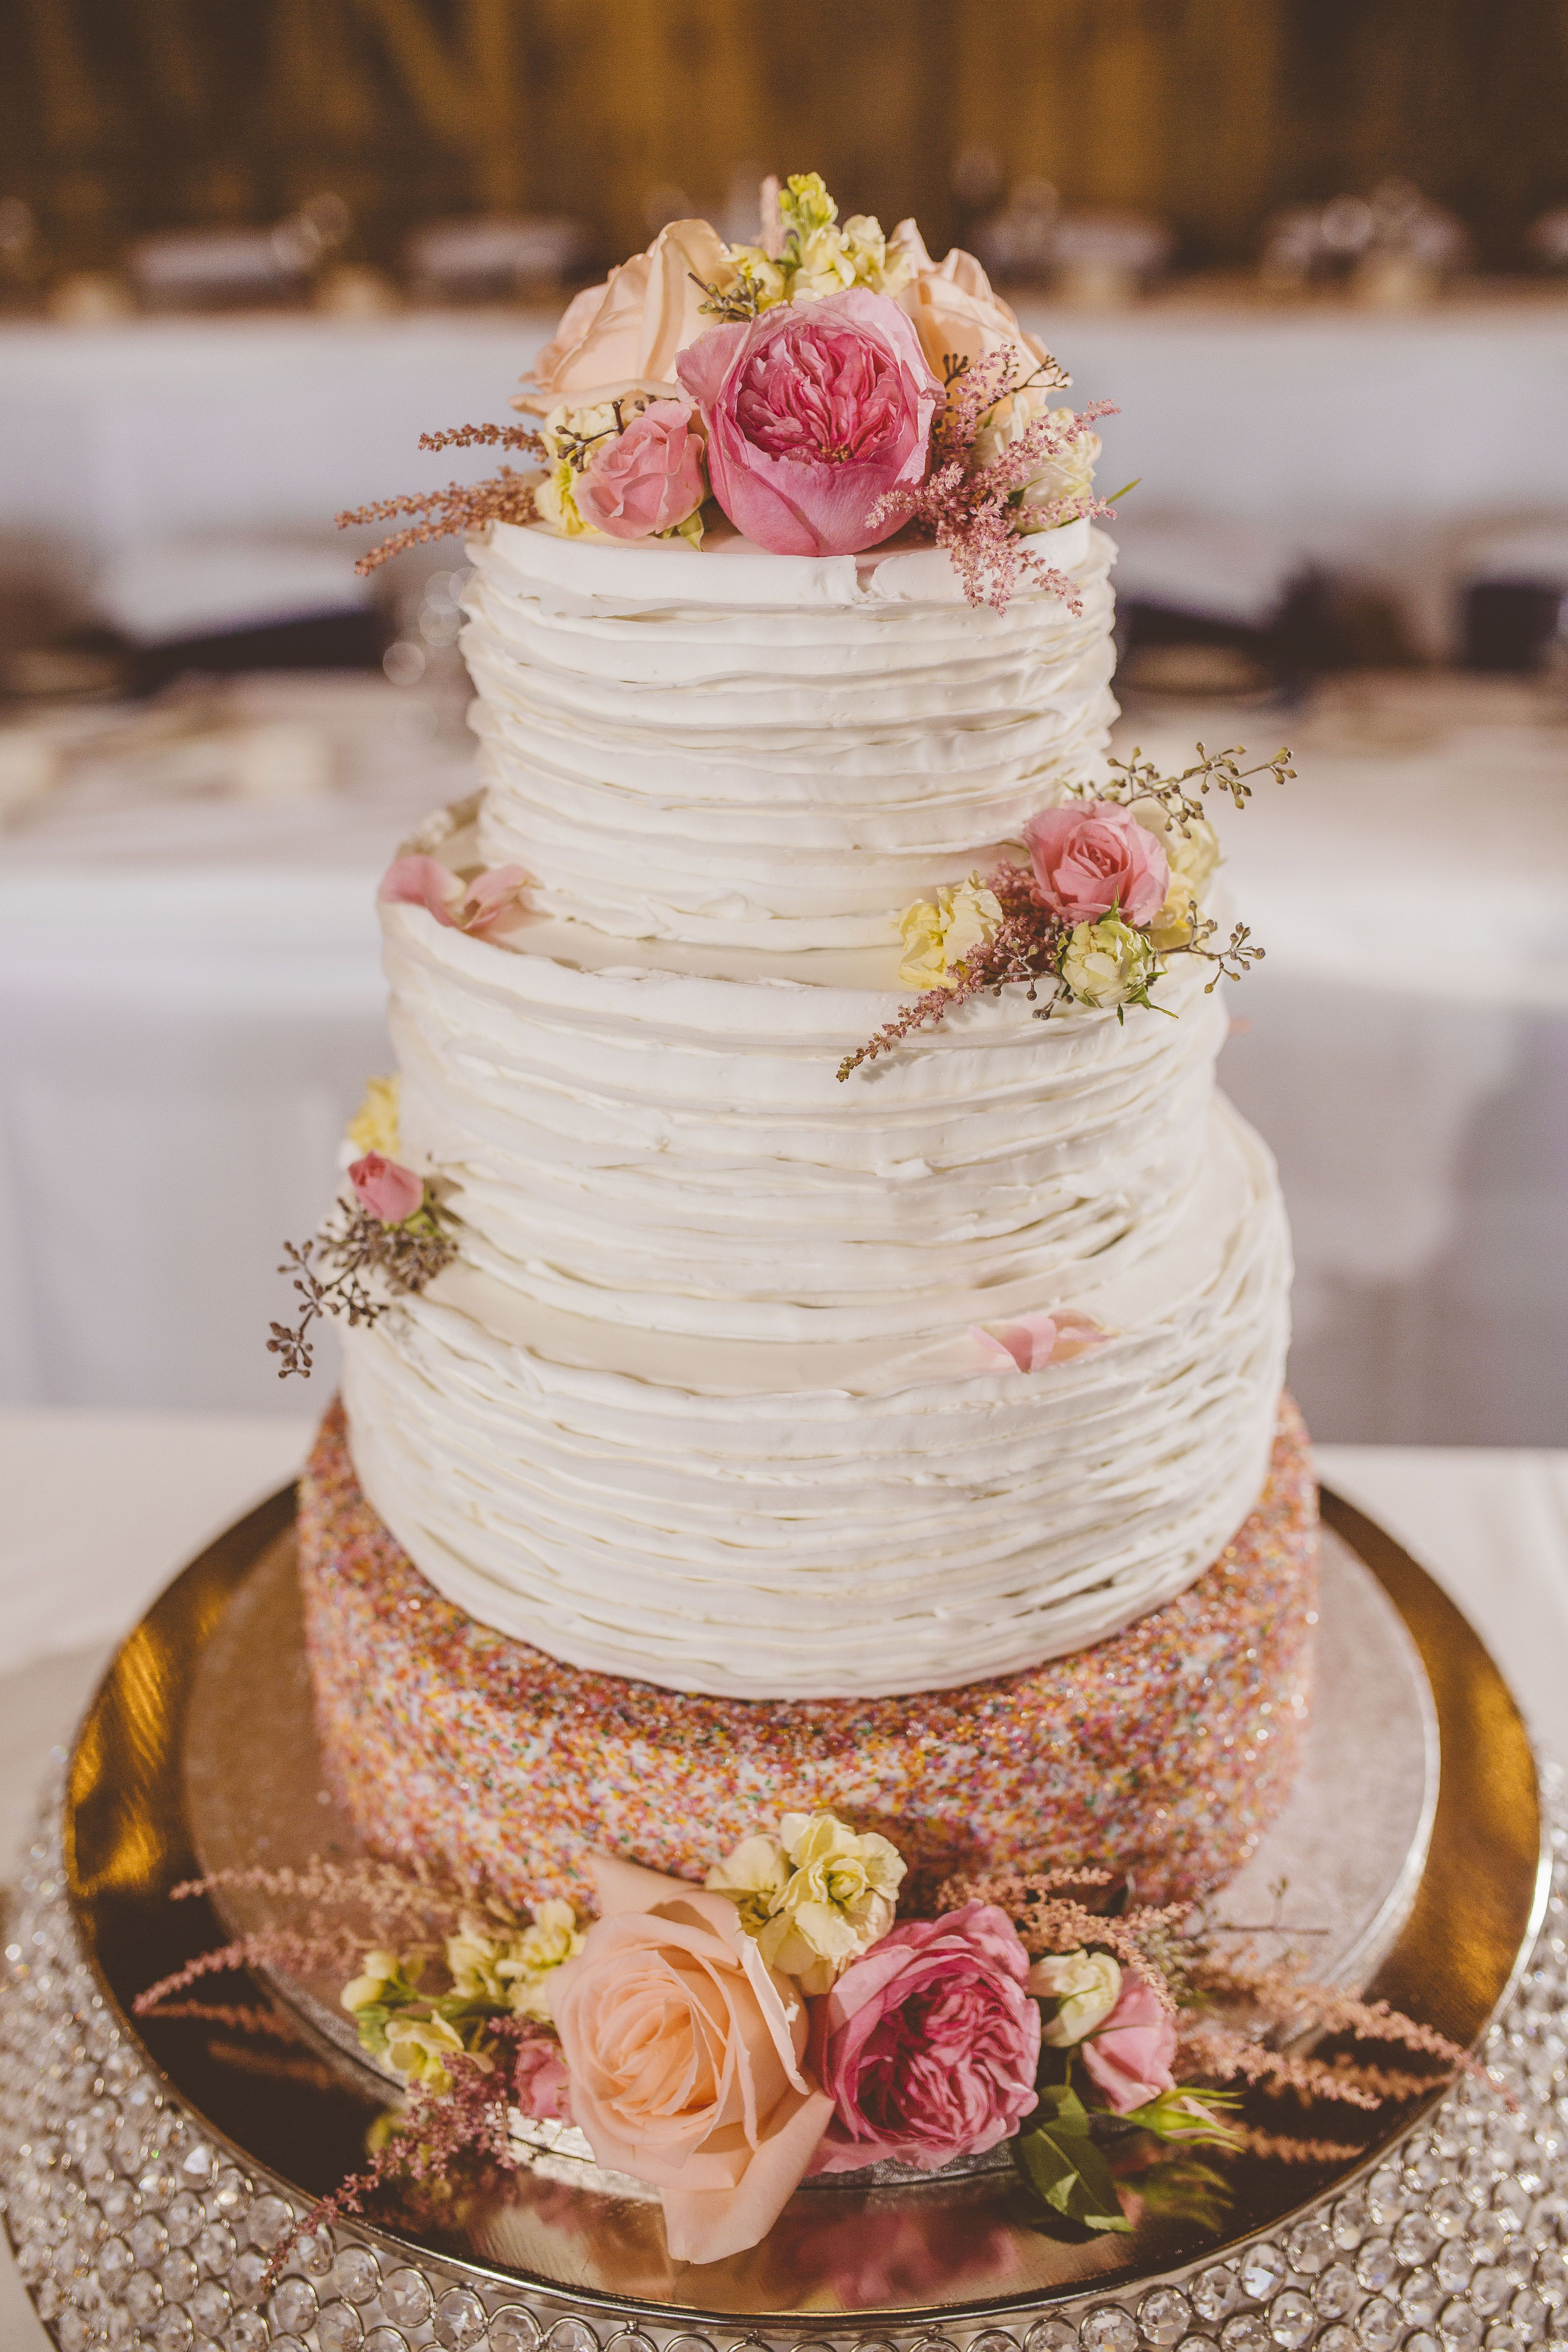 Wedding Cake At County Line Orchard Hobart IN FACEBOOK Https - Wedding Cakes Hobart